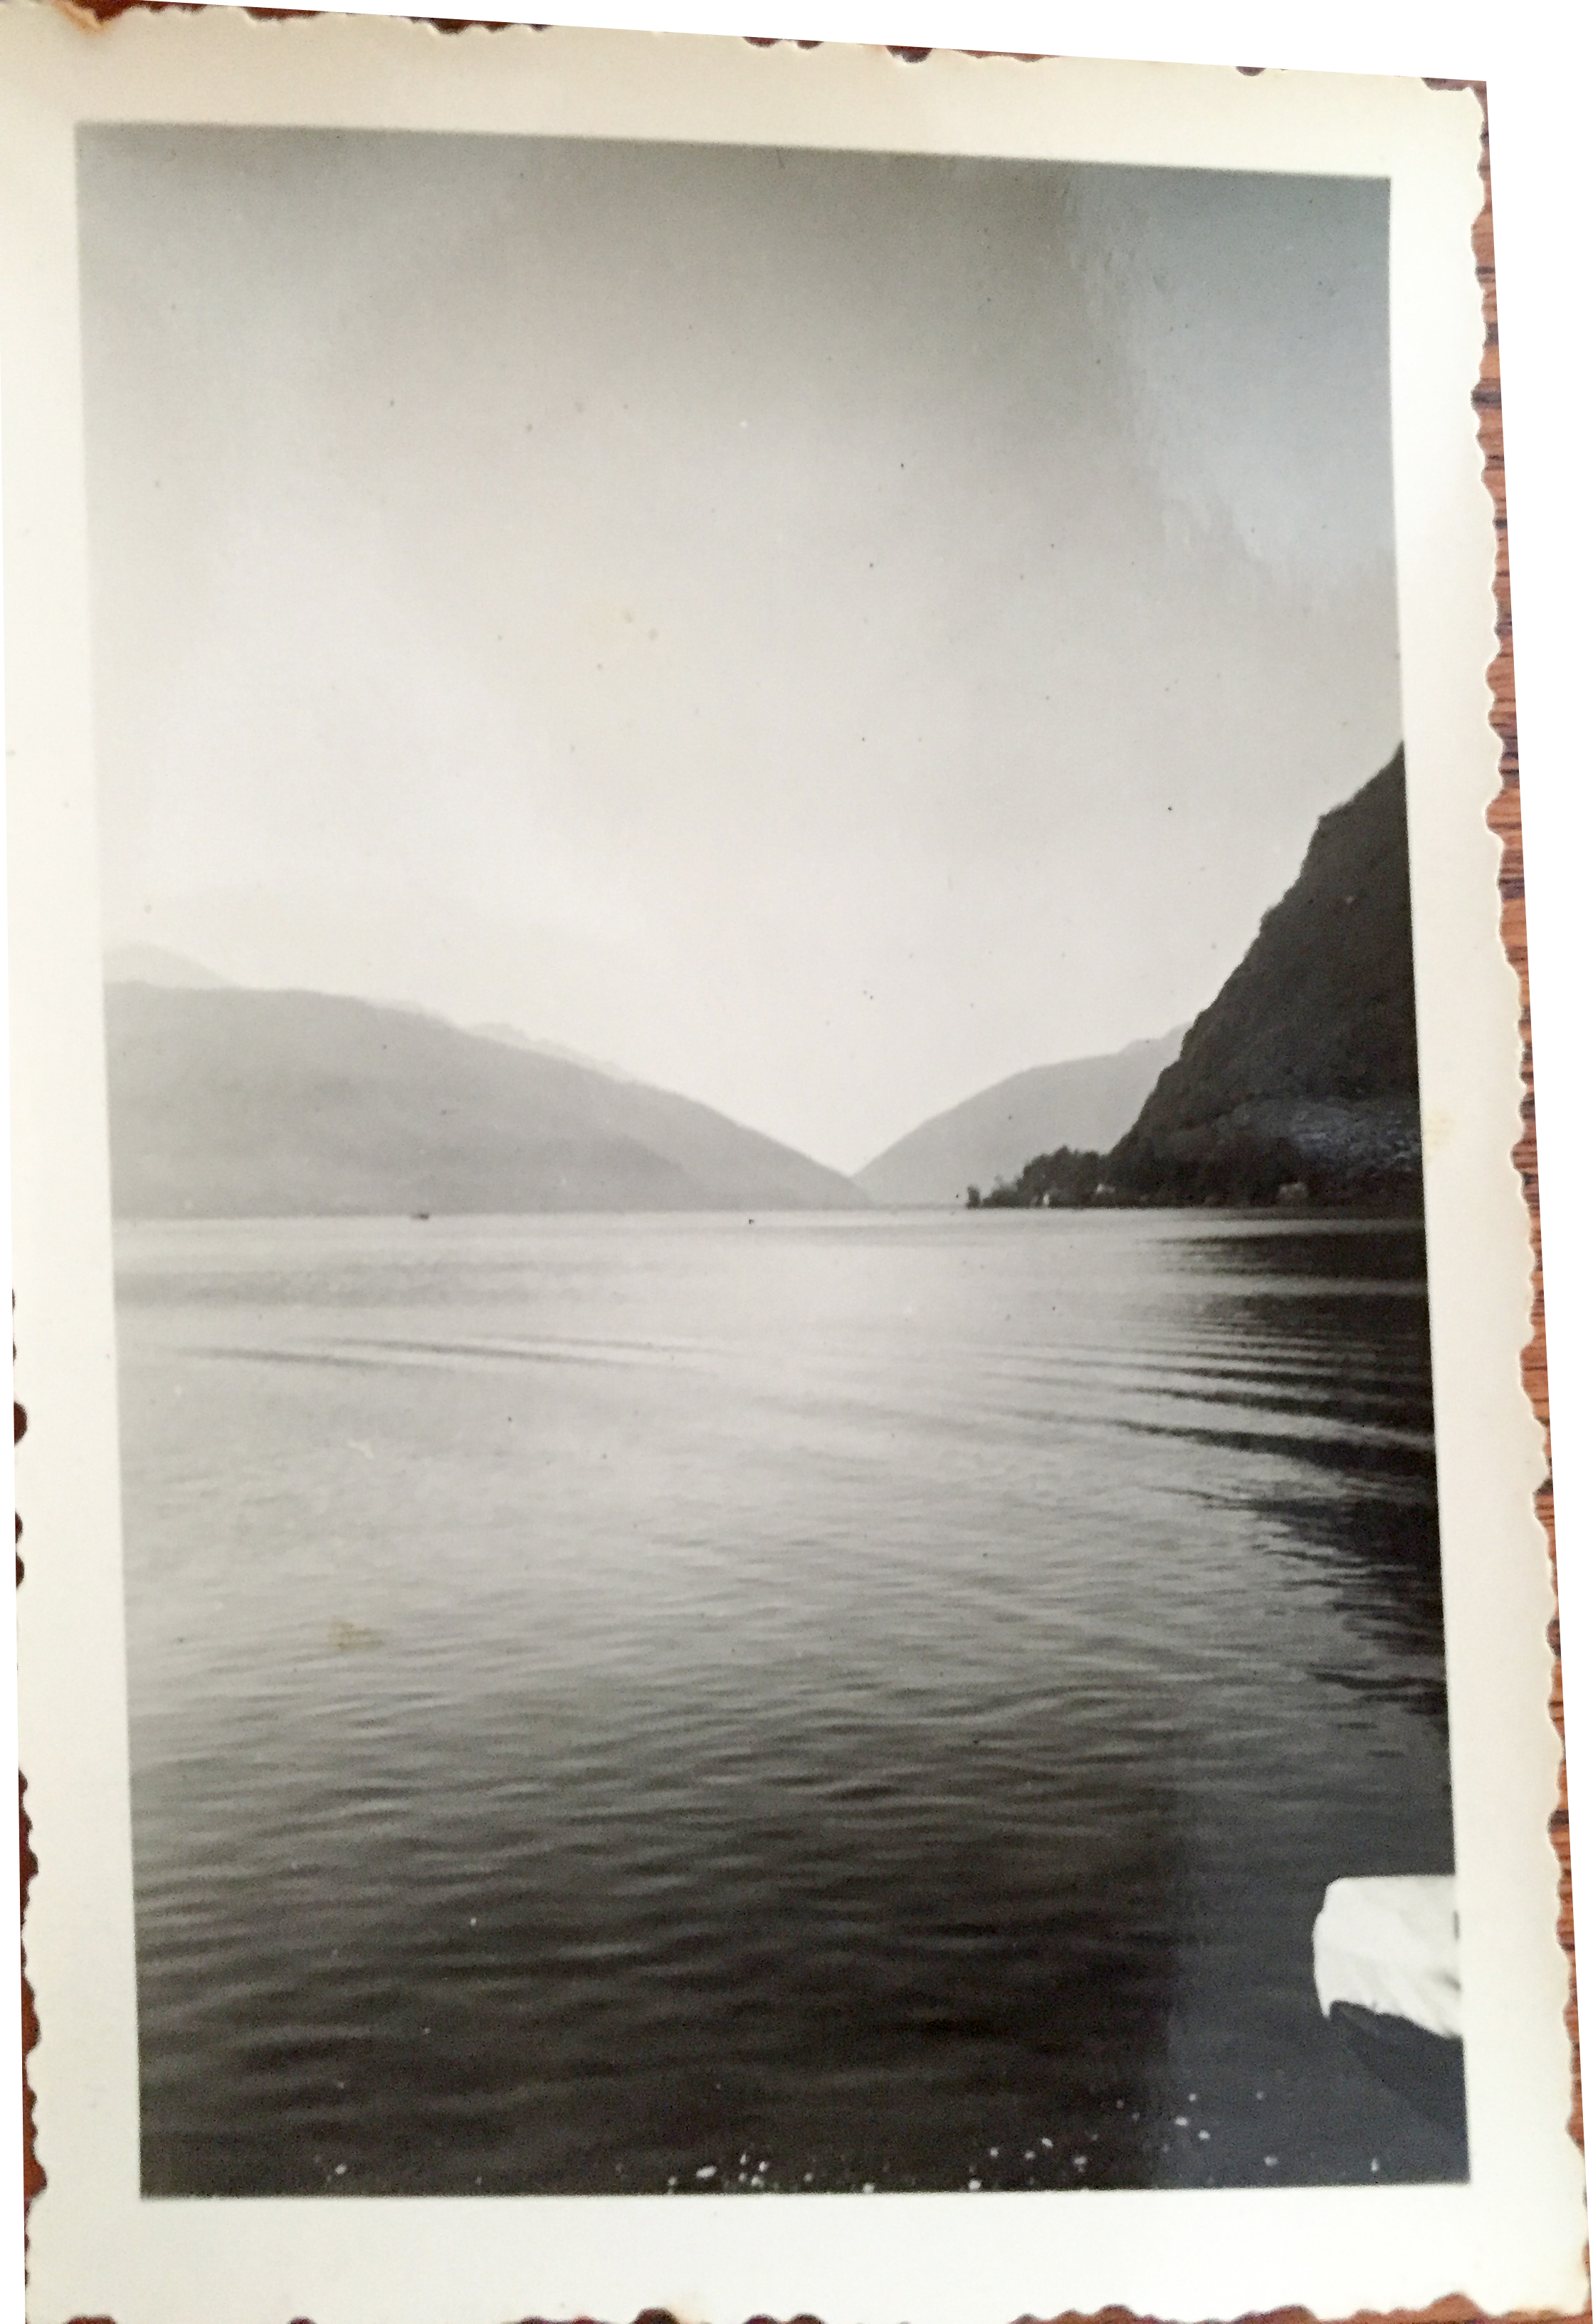 19450827 lugano switzerland